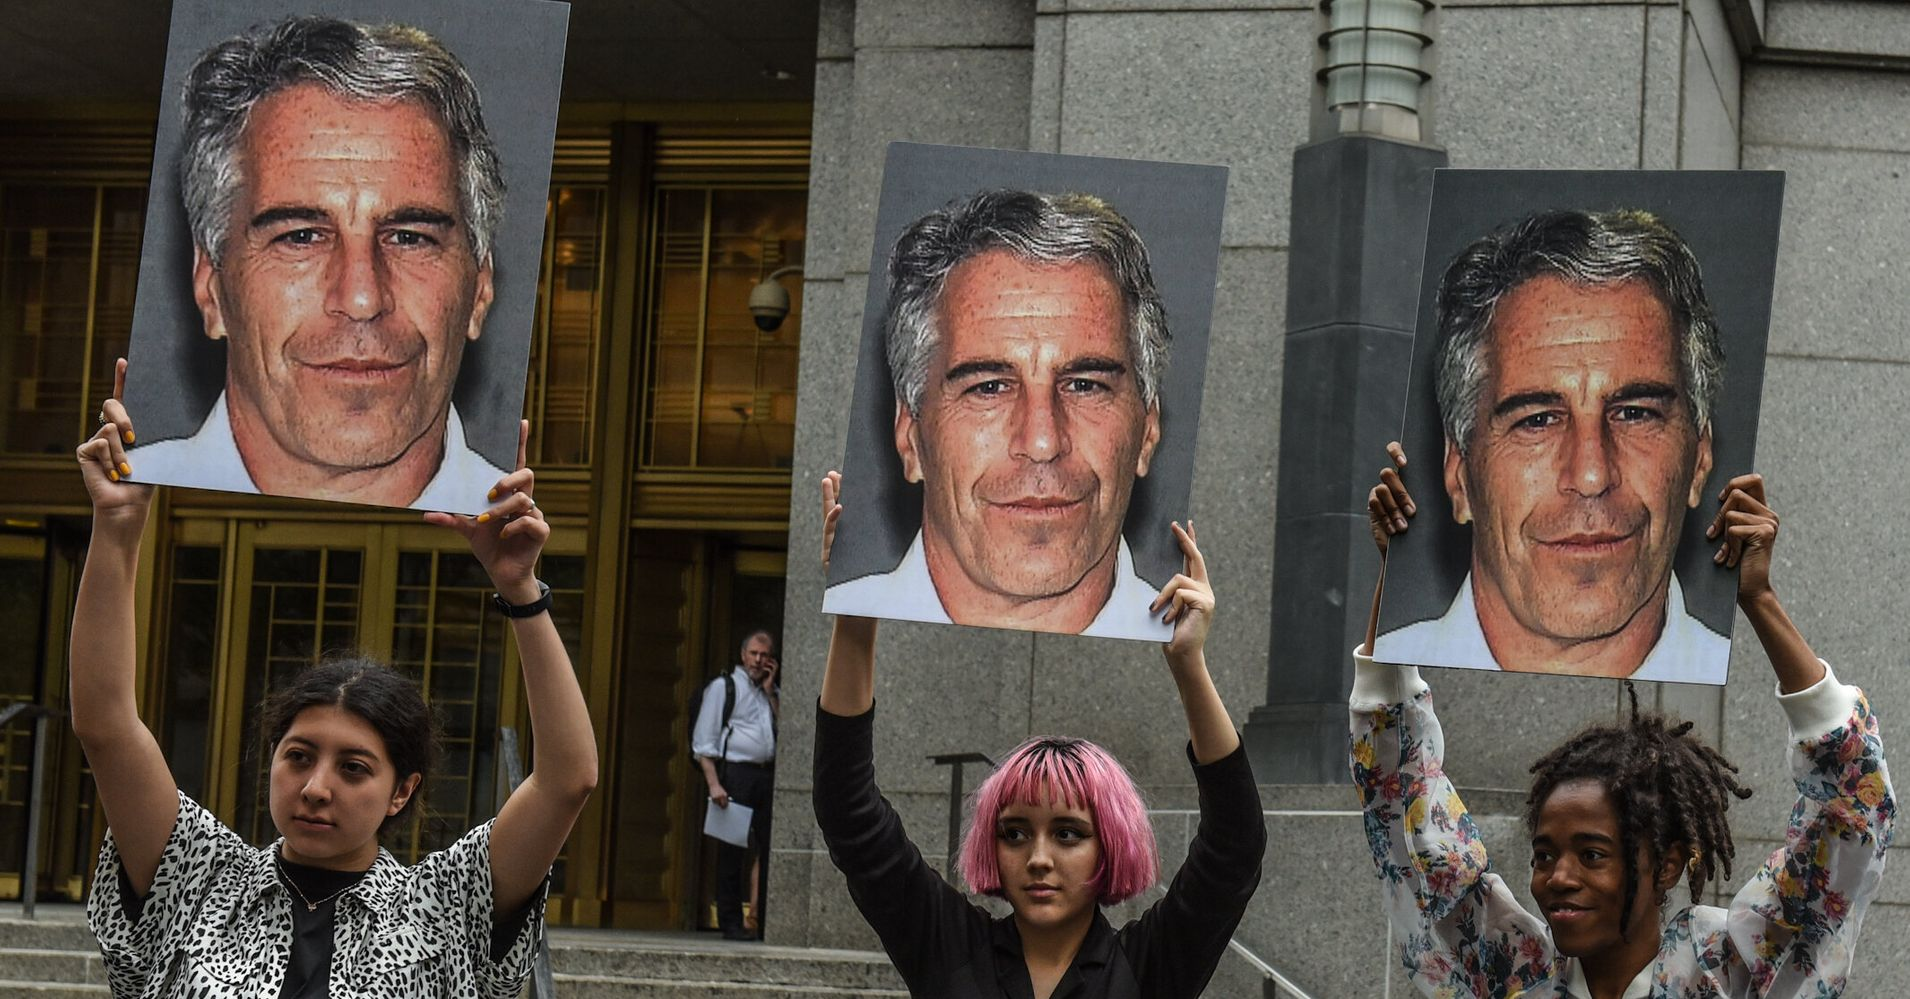 12 More Women Come Forward With Accusations Against Jeffrey Epstein: Report 1